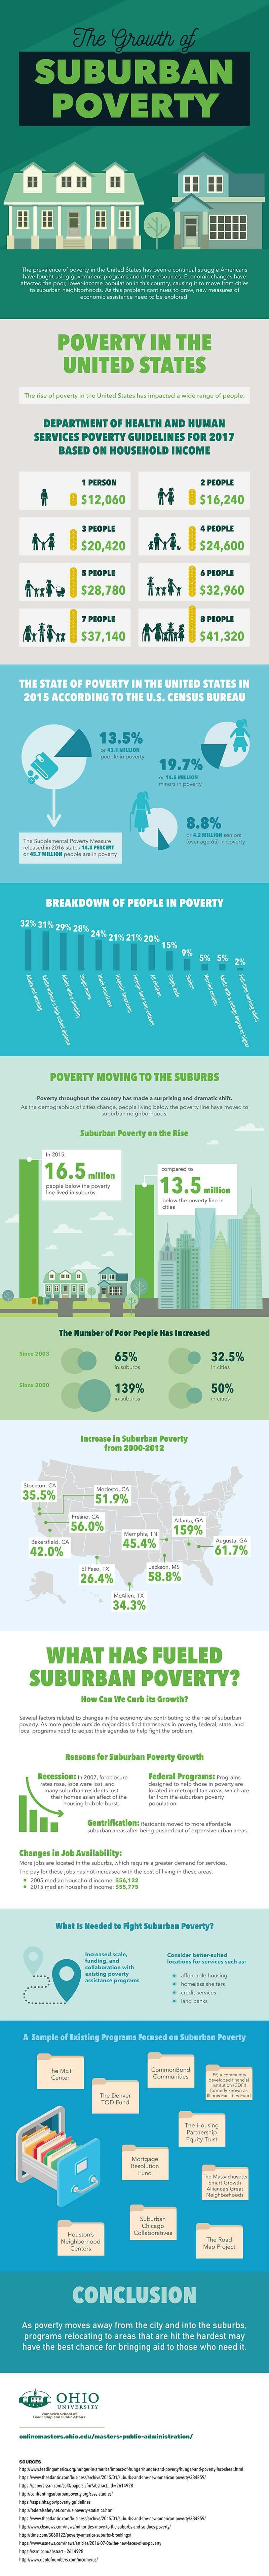 The Growth of Suburban Poverty infographic